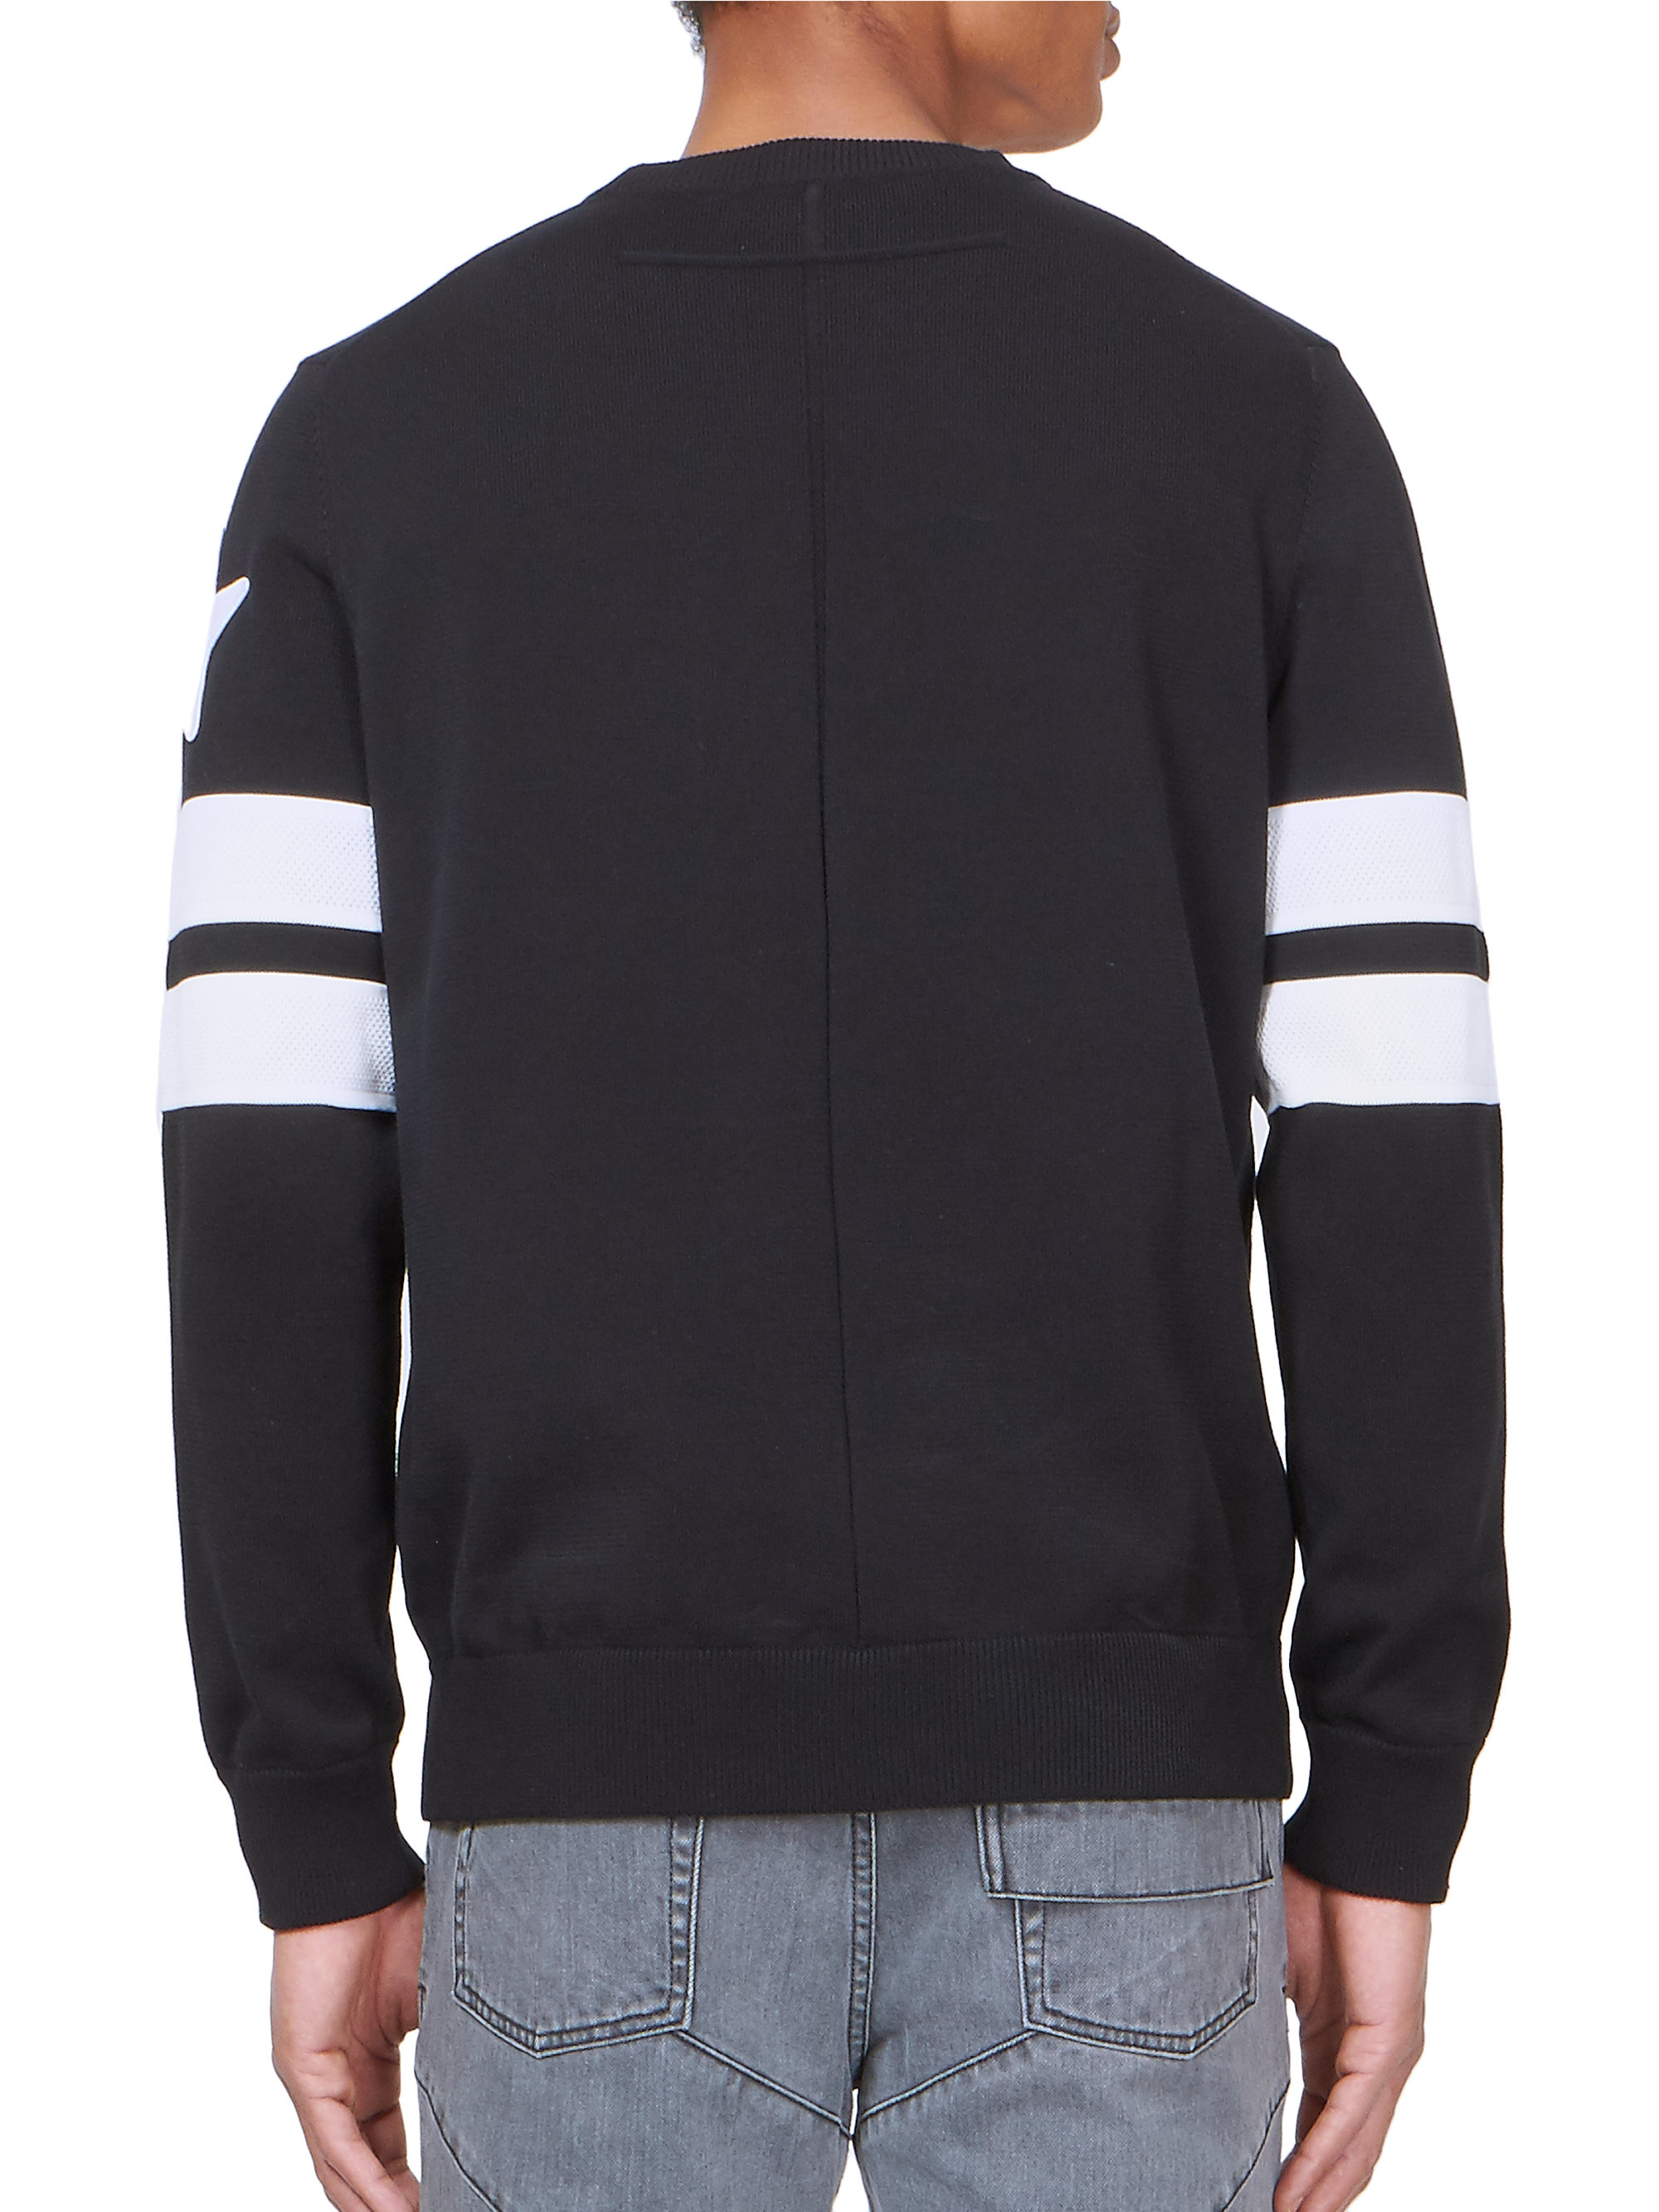 Givenchy star stripe sweatshirt in black for men lyst for Givenchy 5 star shirt